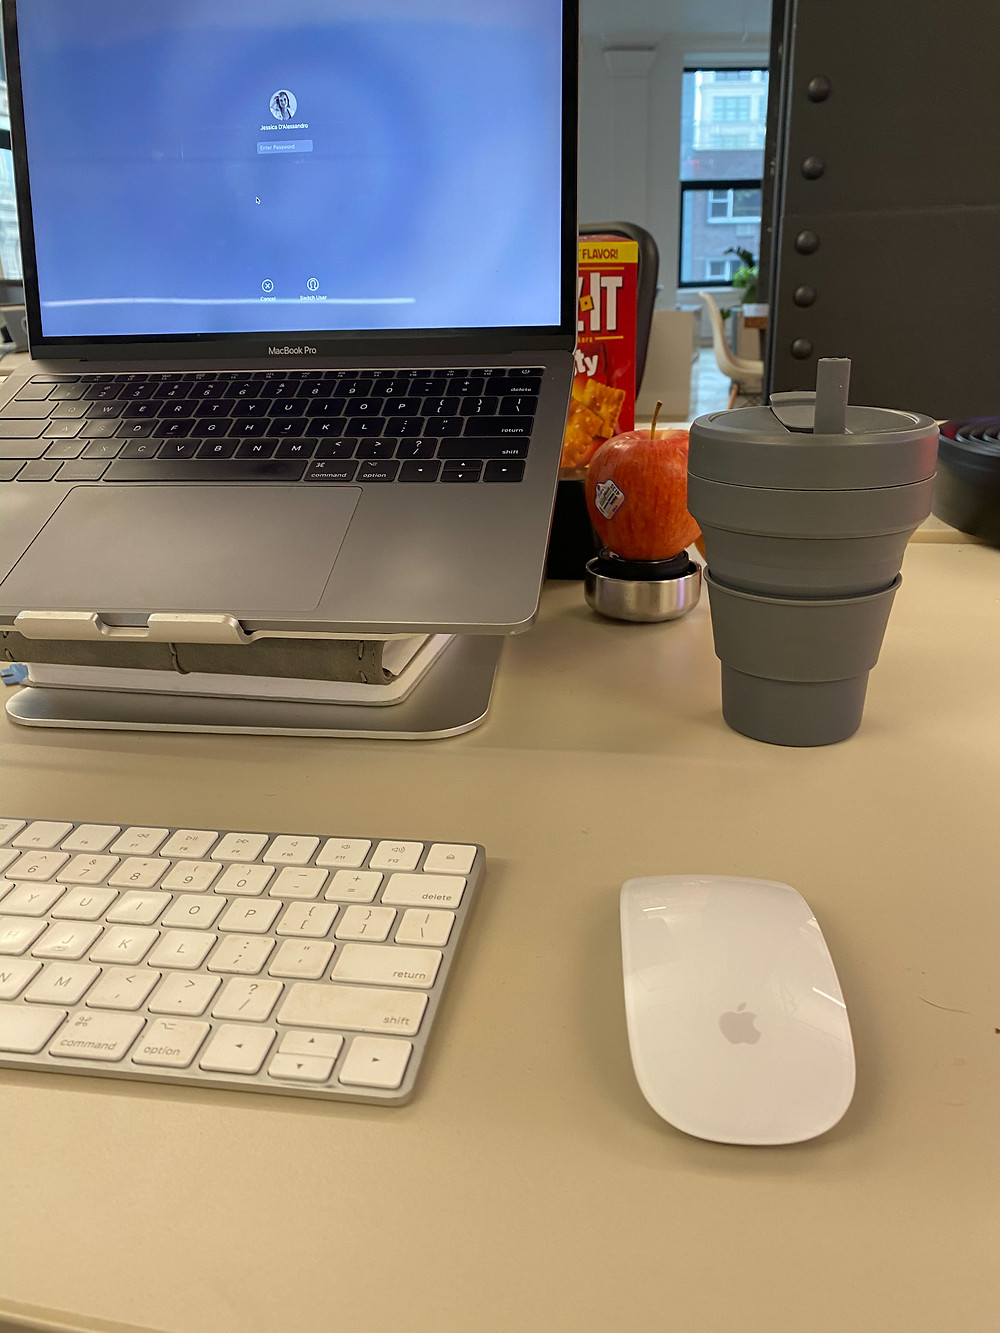 All items linked below for the desk vibe.